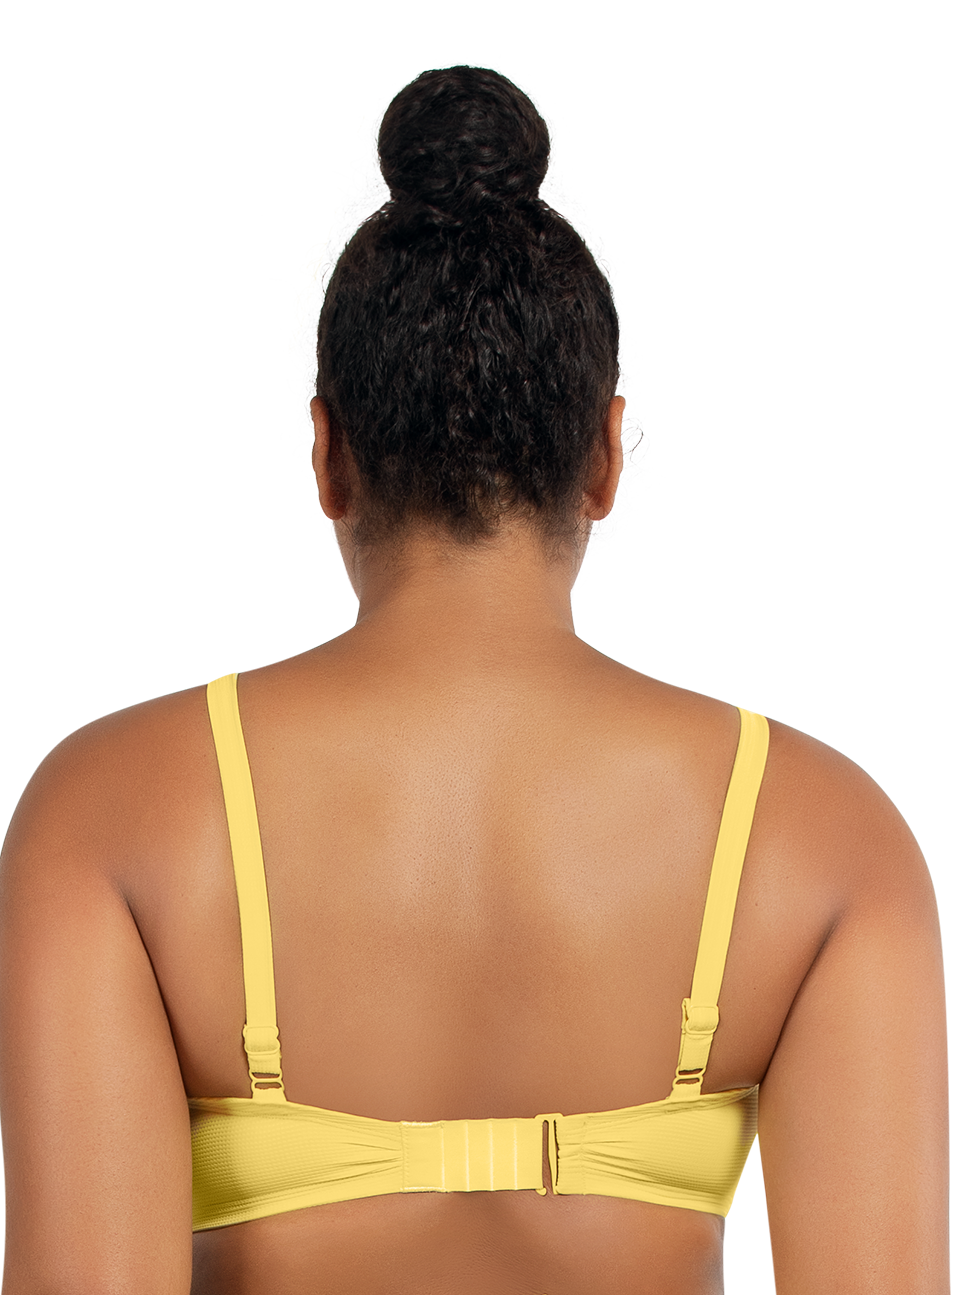 PARFAIT Vivien BalconetteBikiniTopS8162 LemonDrop Back - Vivien Balconette Bikini Top Lemon Drop S8162